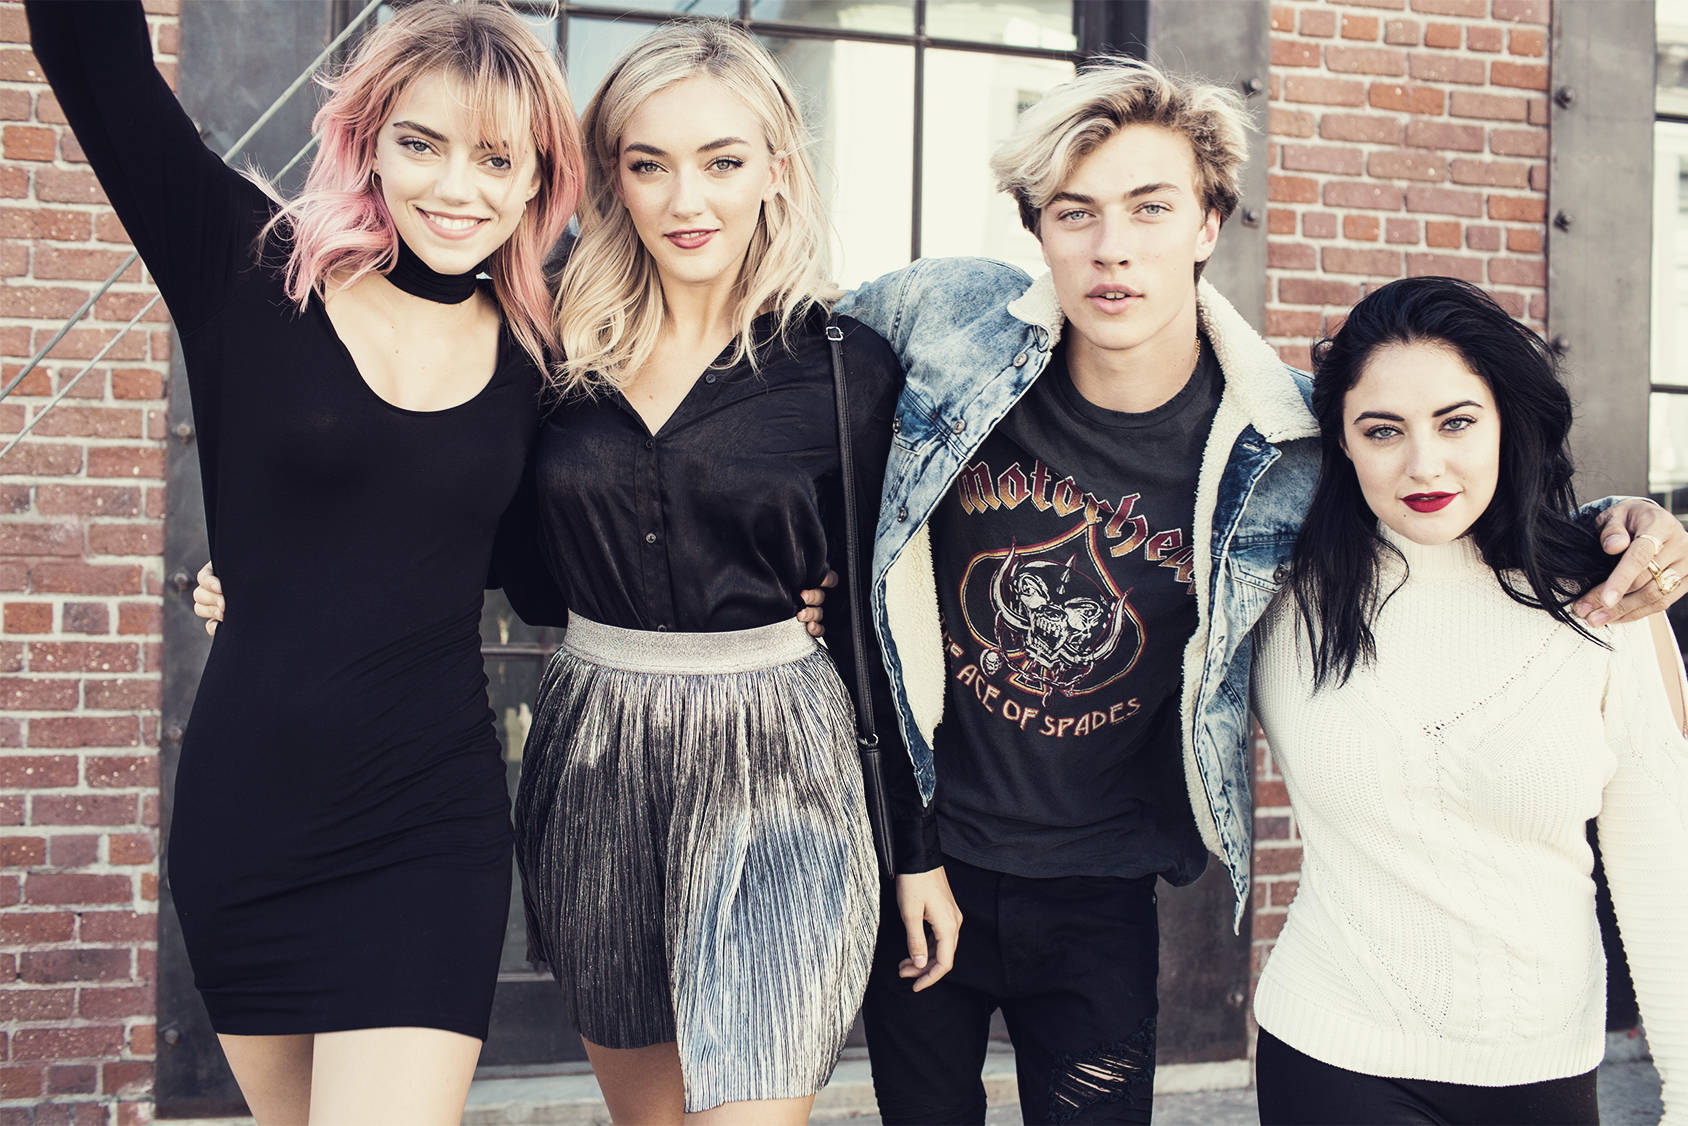 The Atomics reveal their new year's resolutions